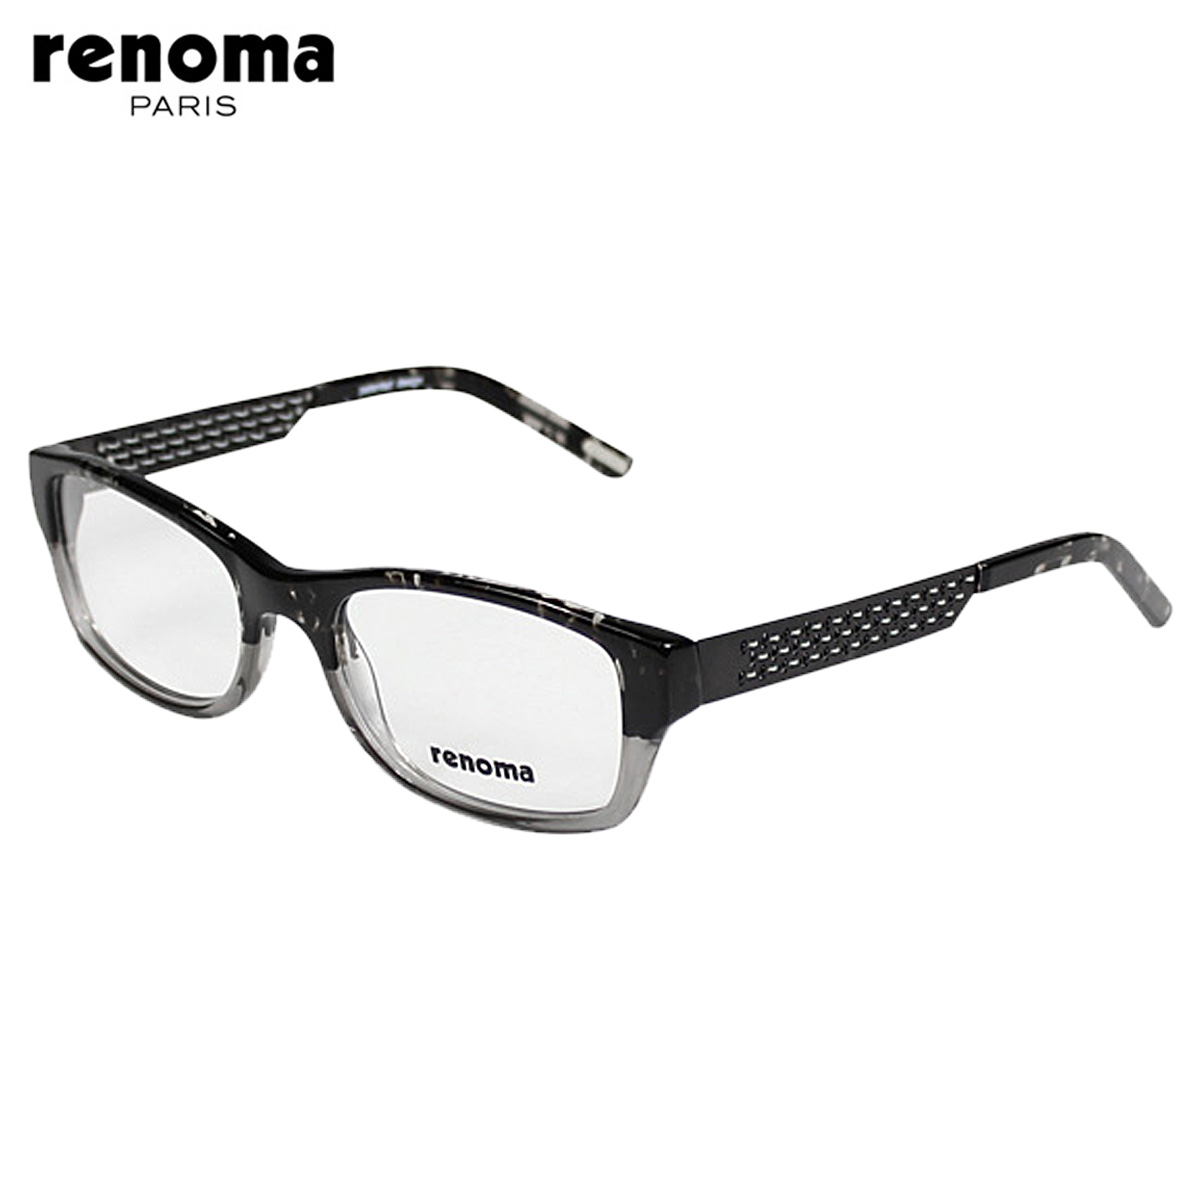 759c9530ef ALLSPORTS  Renoma renoma glasses  Black x gray  cell x metal frame ...